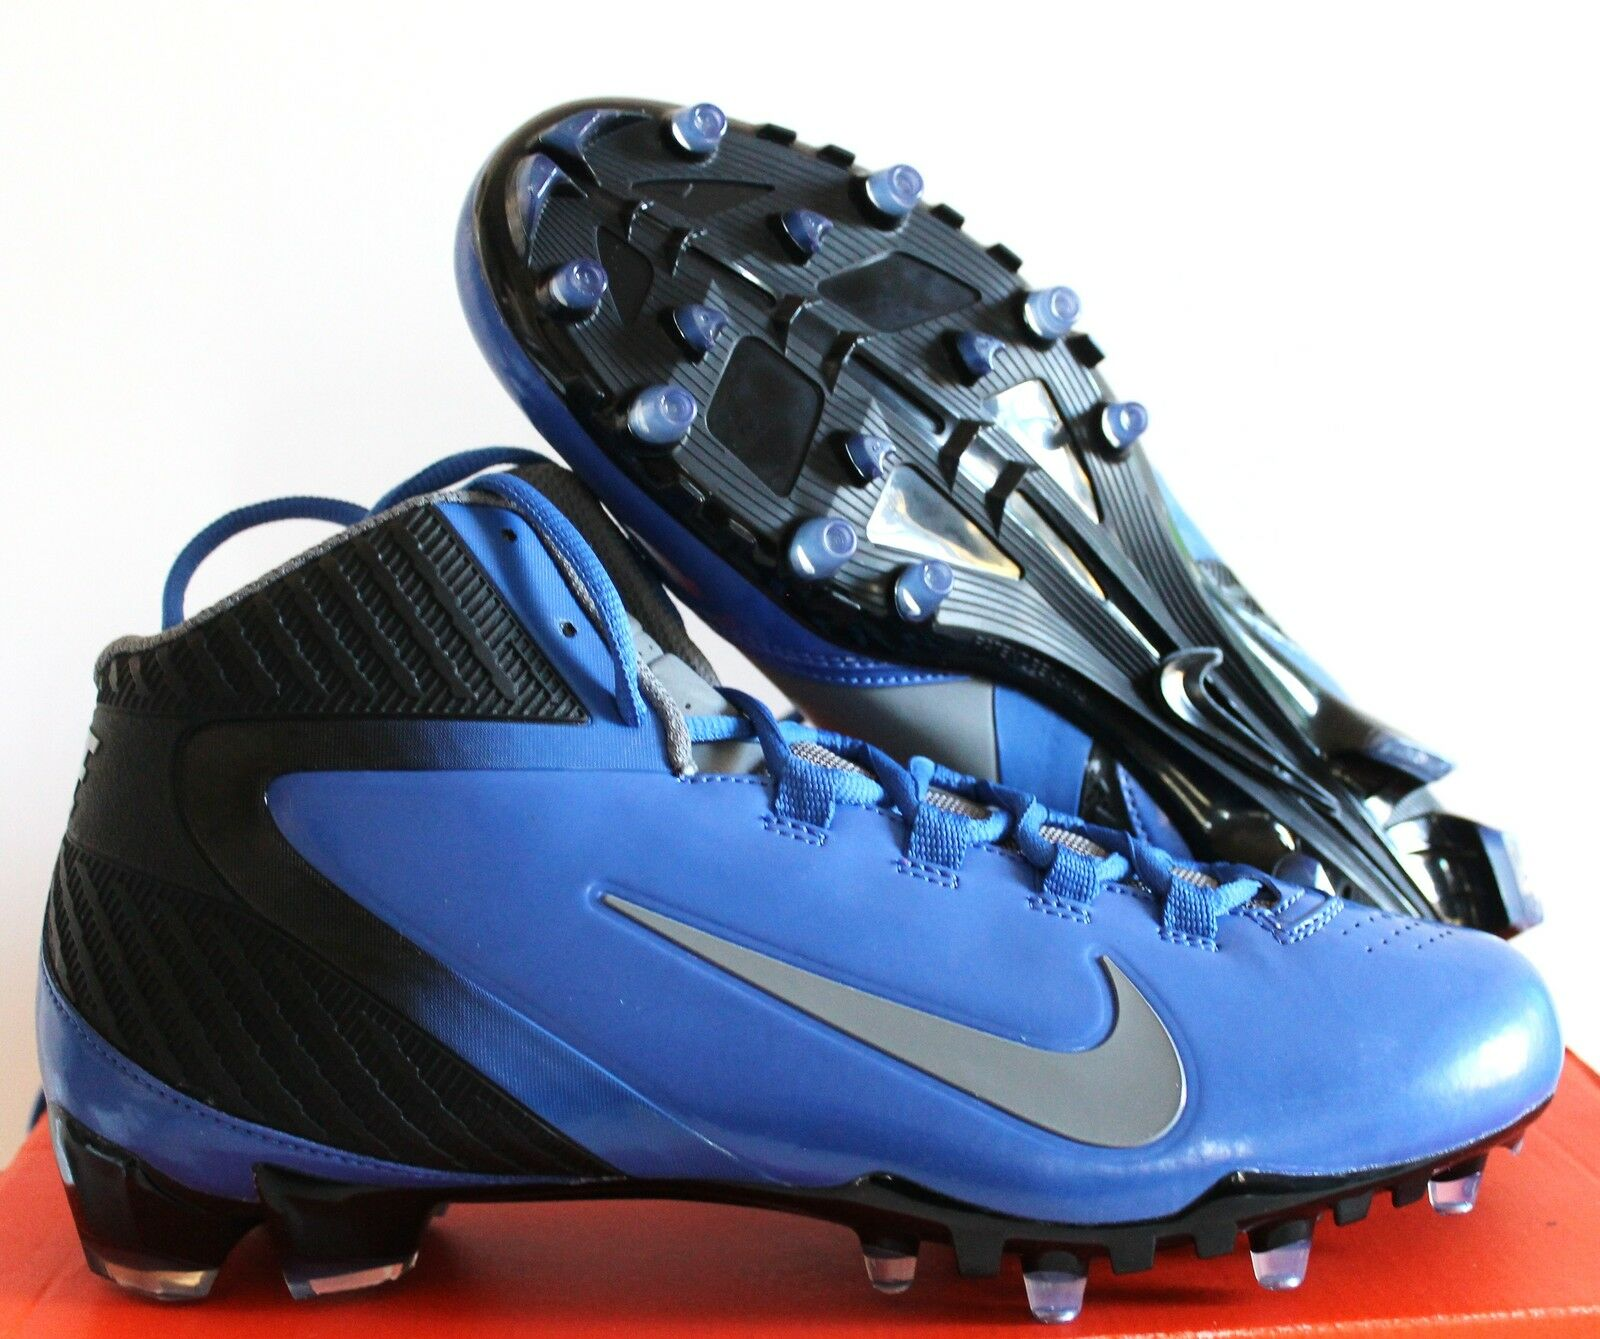 NIKE ALPHA SPEED iD FOOTBALL CLEAT blueE SZ 10.5 [541217 991]